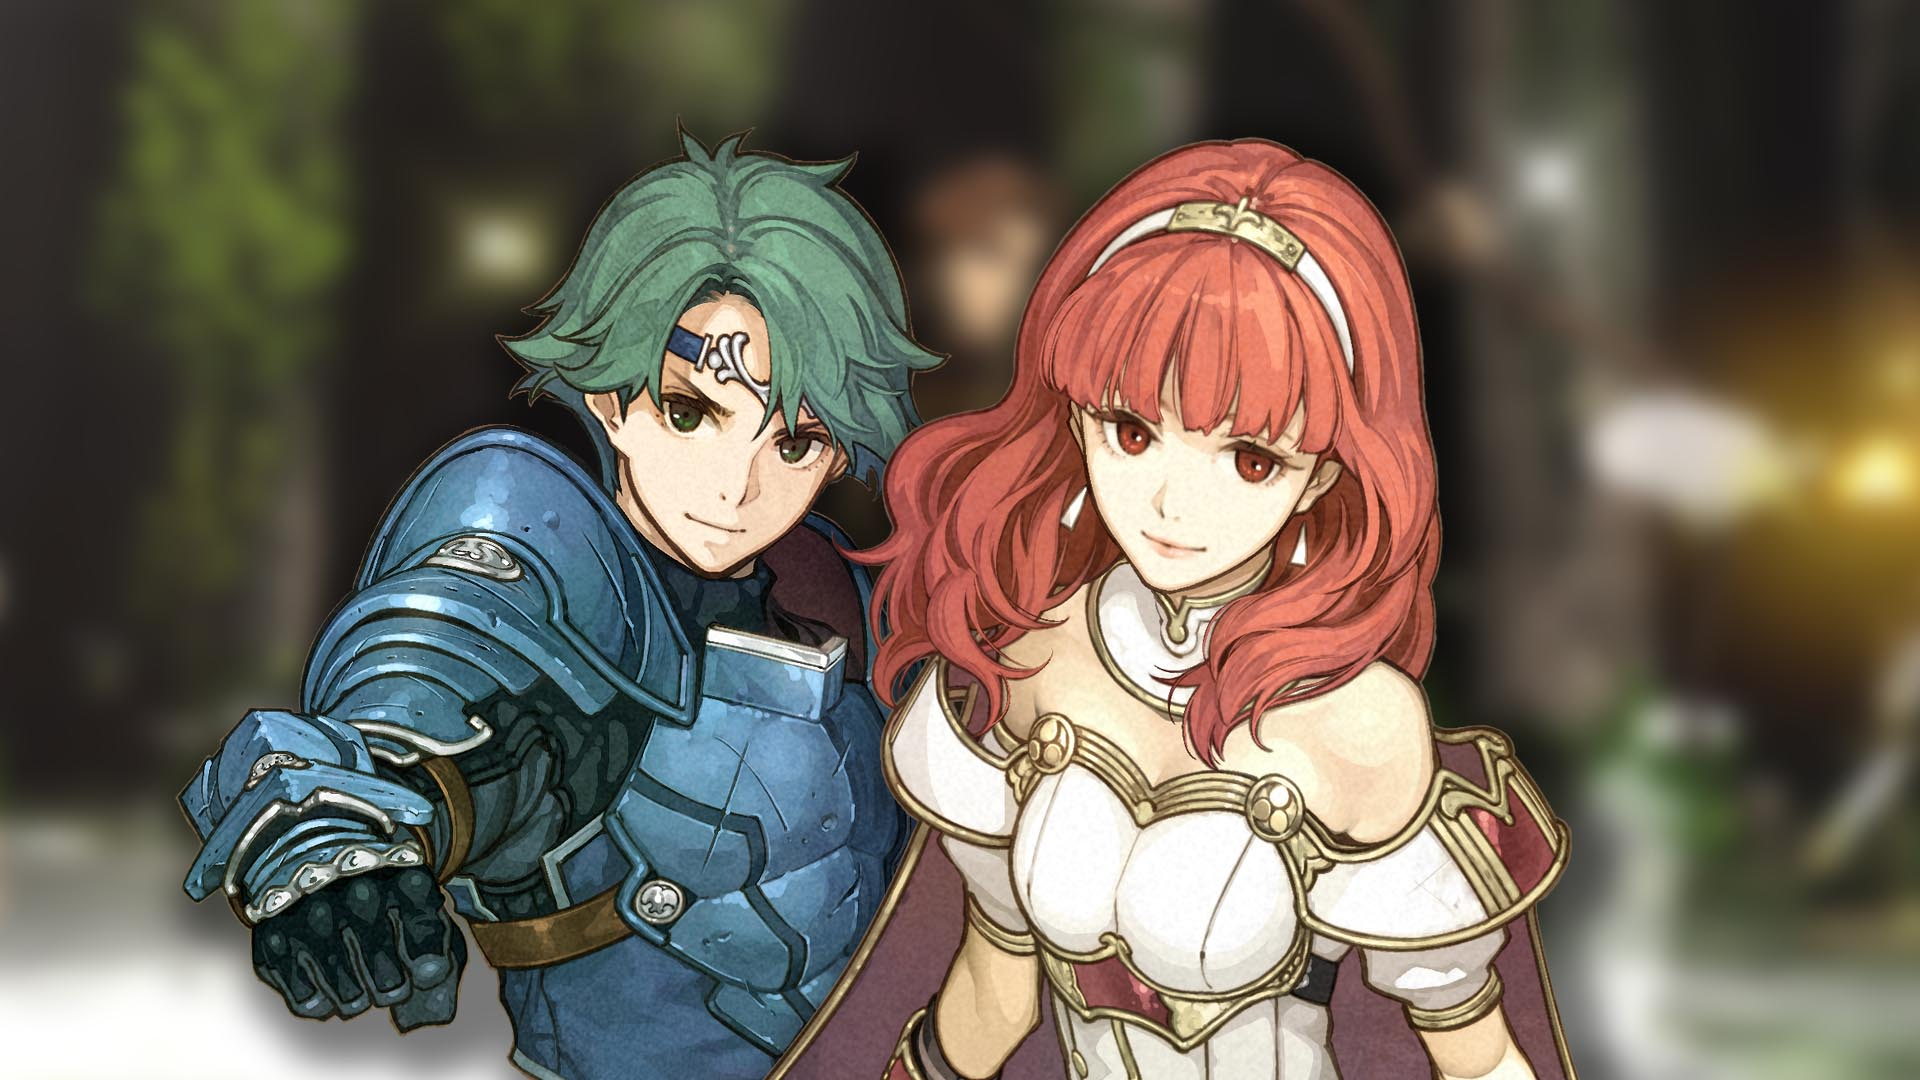 Modojo | Fire Emblem Echoes: Shadows of Valentia - How To Choose The Best Class For Faye